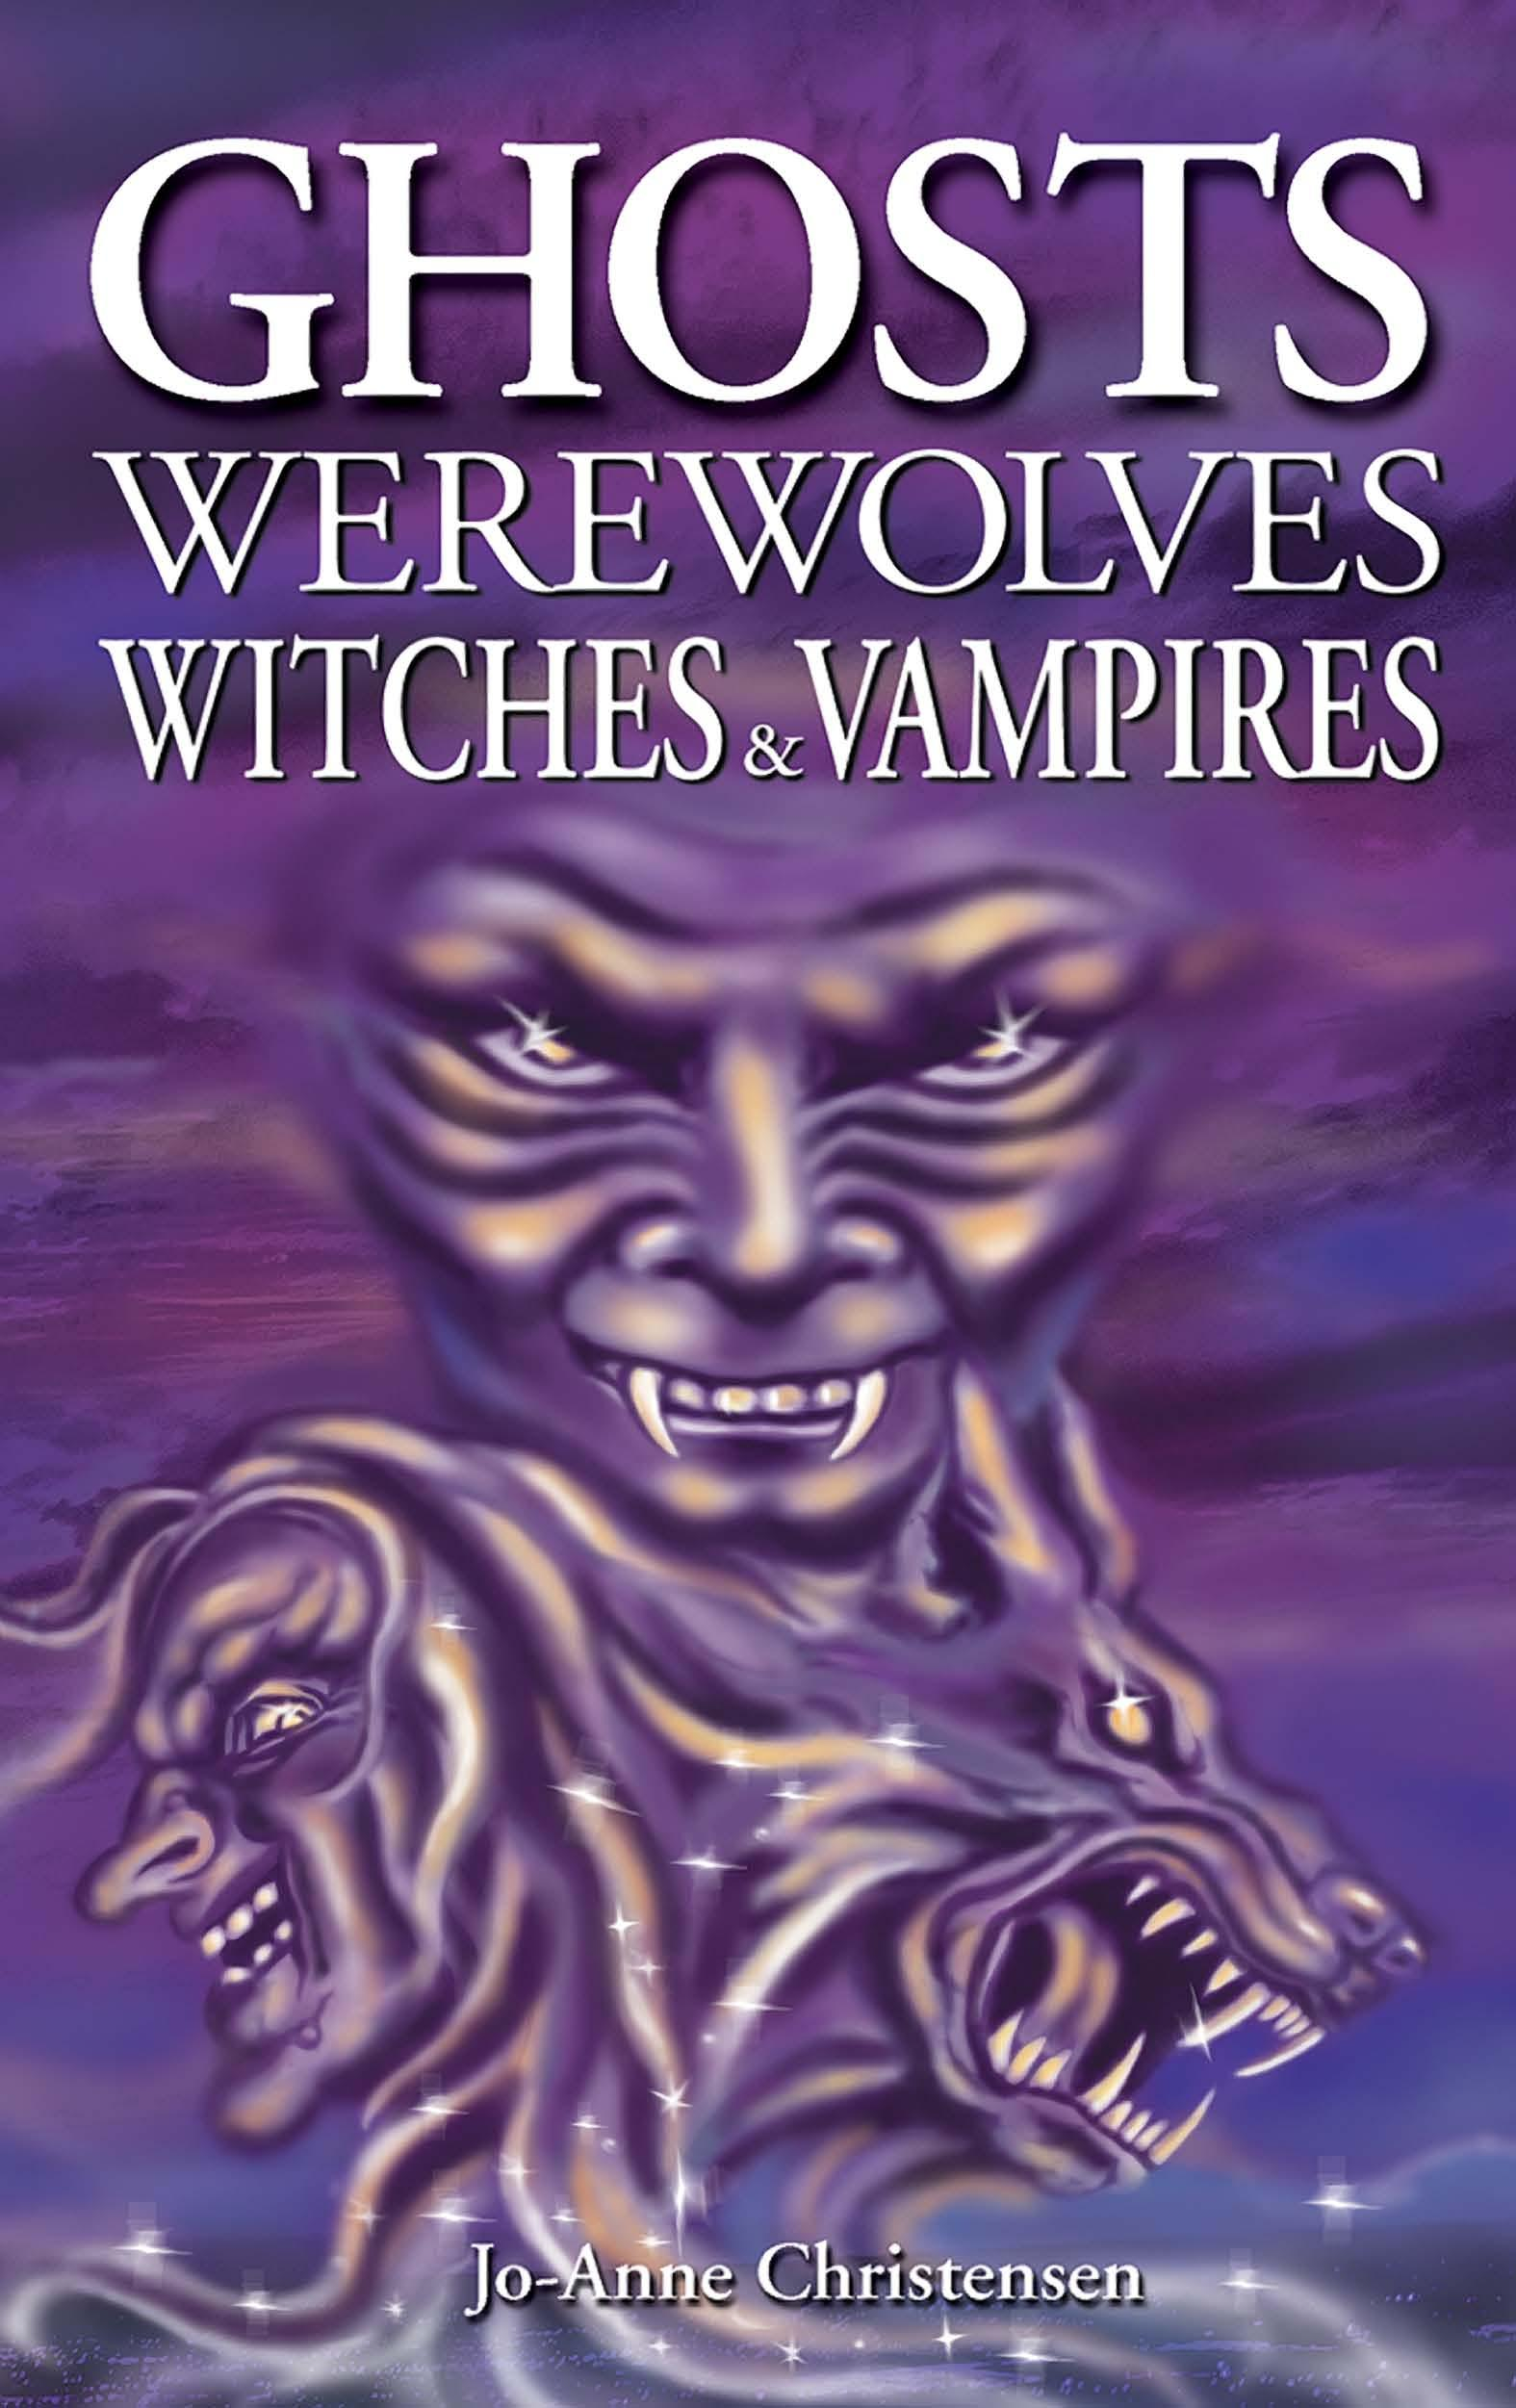 Ghosts Werewolves Witches and Vampires